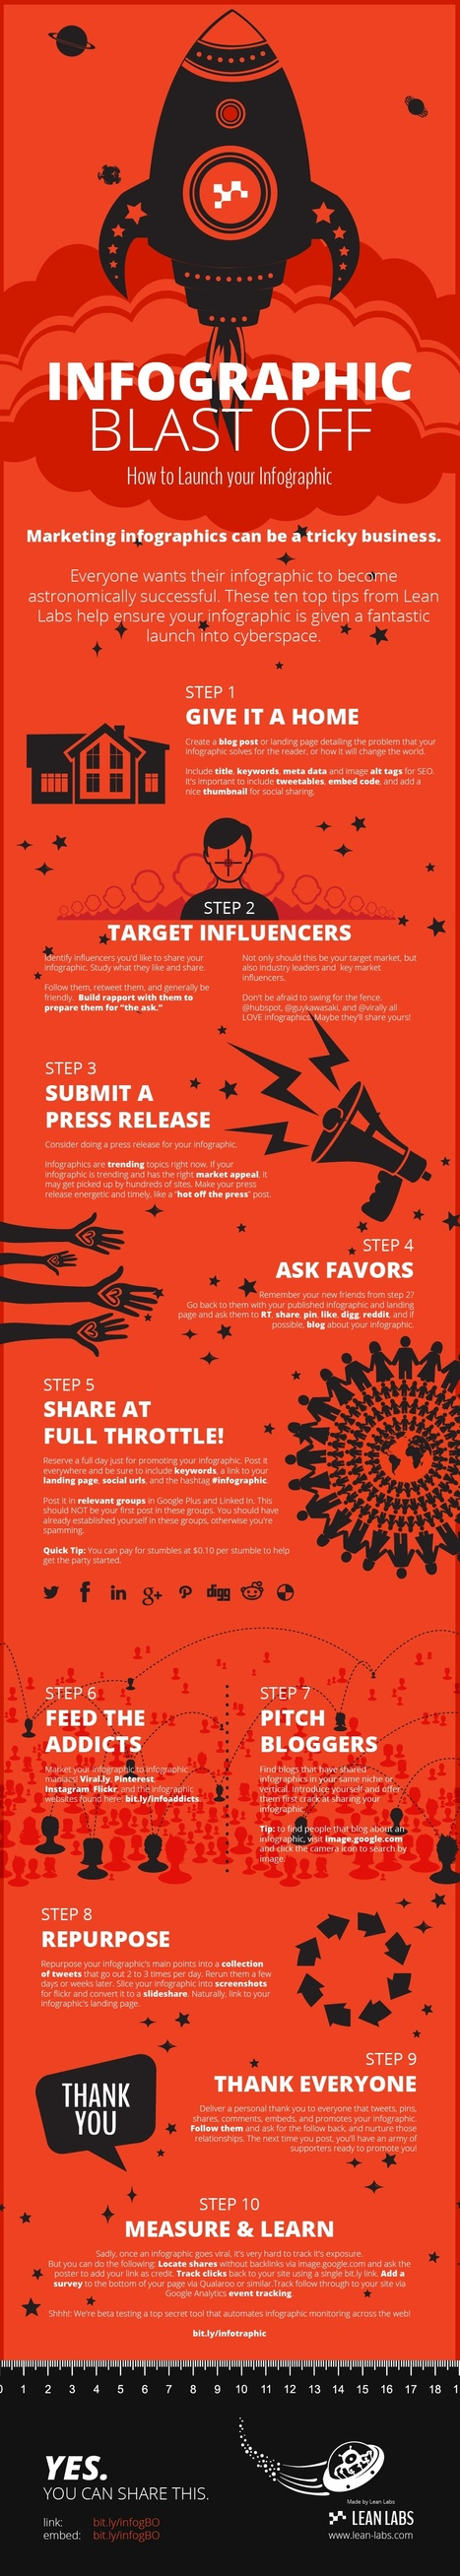 Best Practices for Creating and Promoting Infographics #INFOGRAPHIC   MarketingHits   Scoop.it